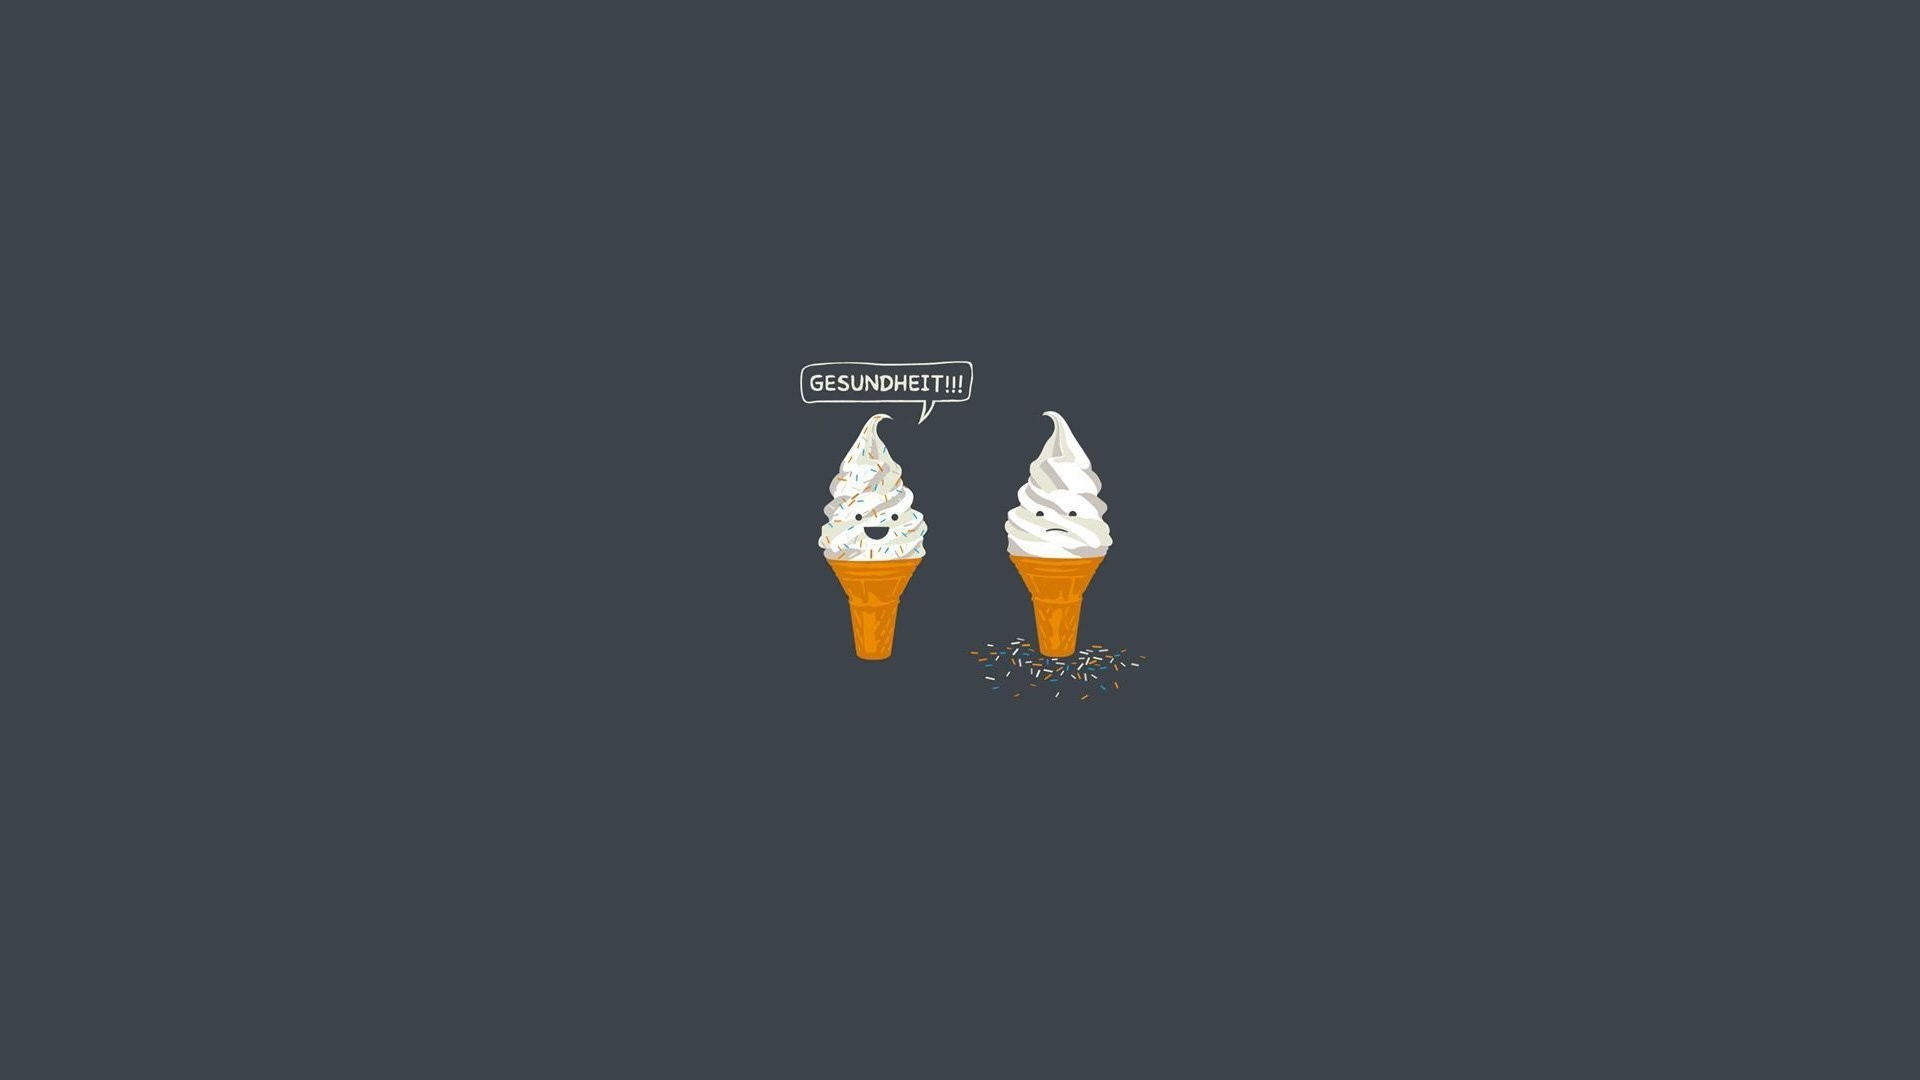 fun computer backgrounds 50 images